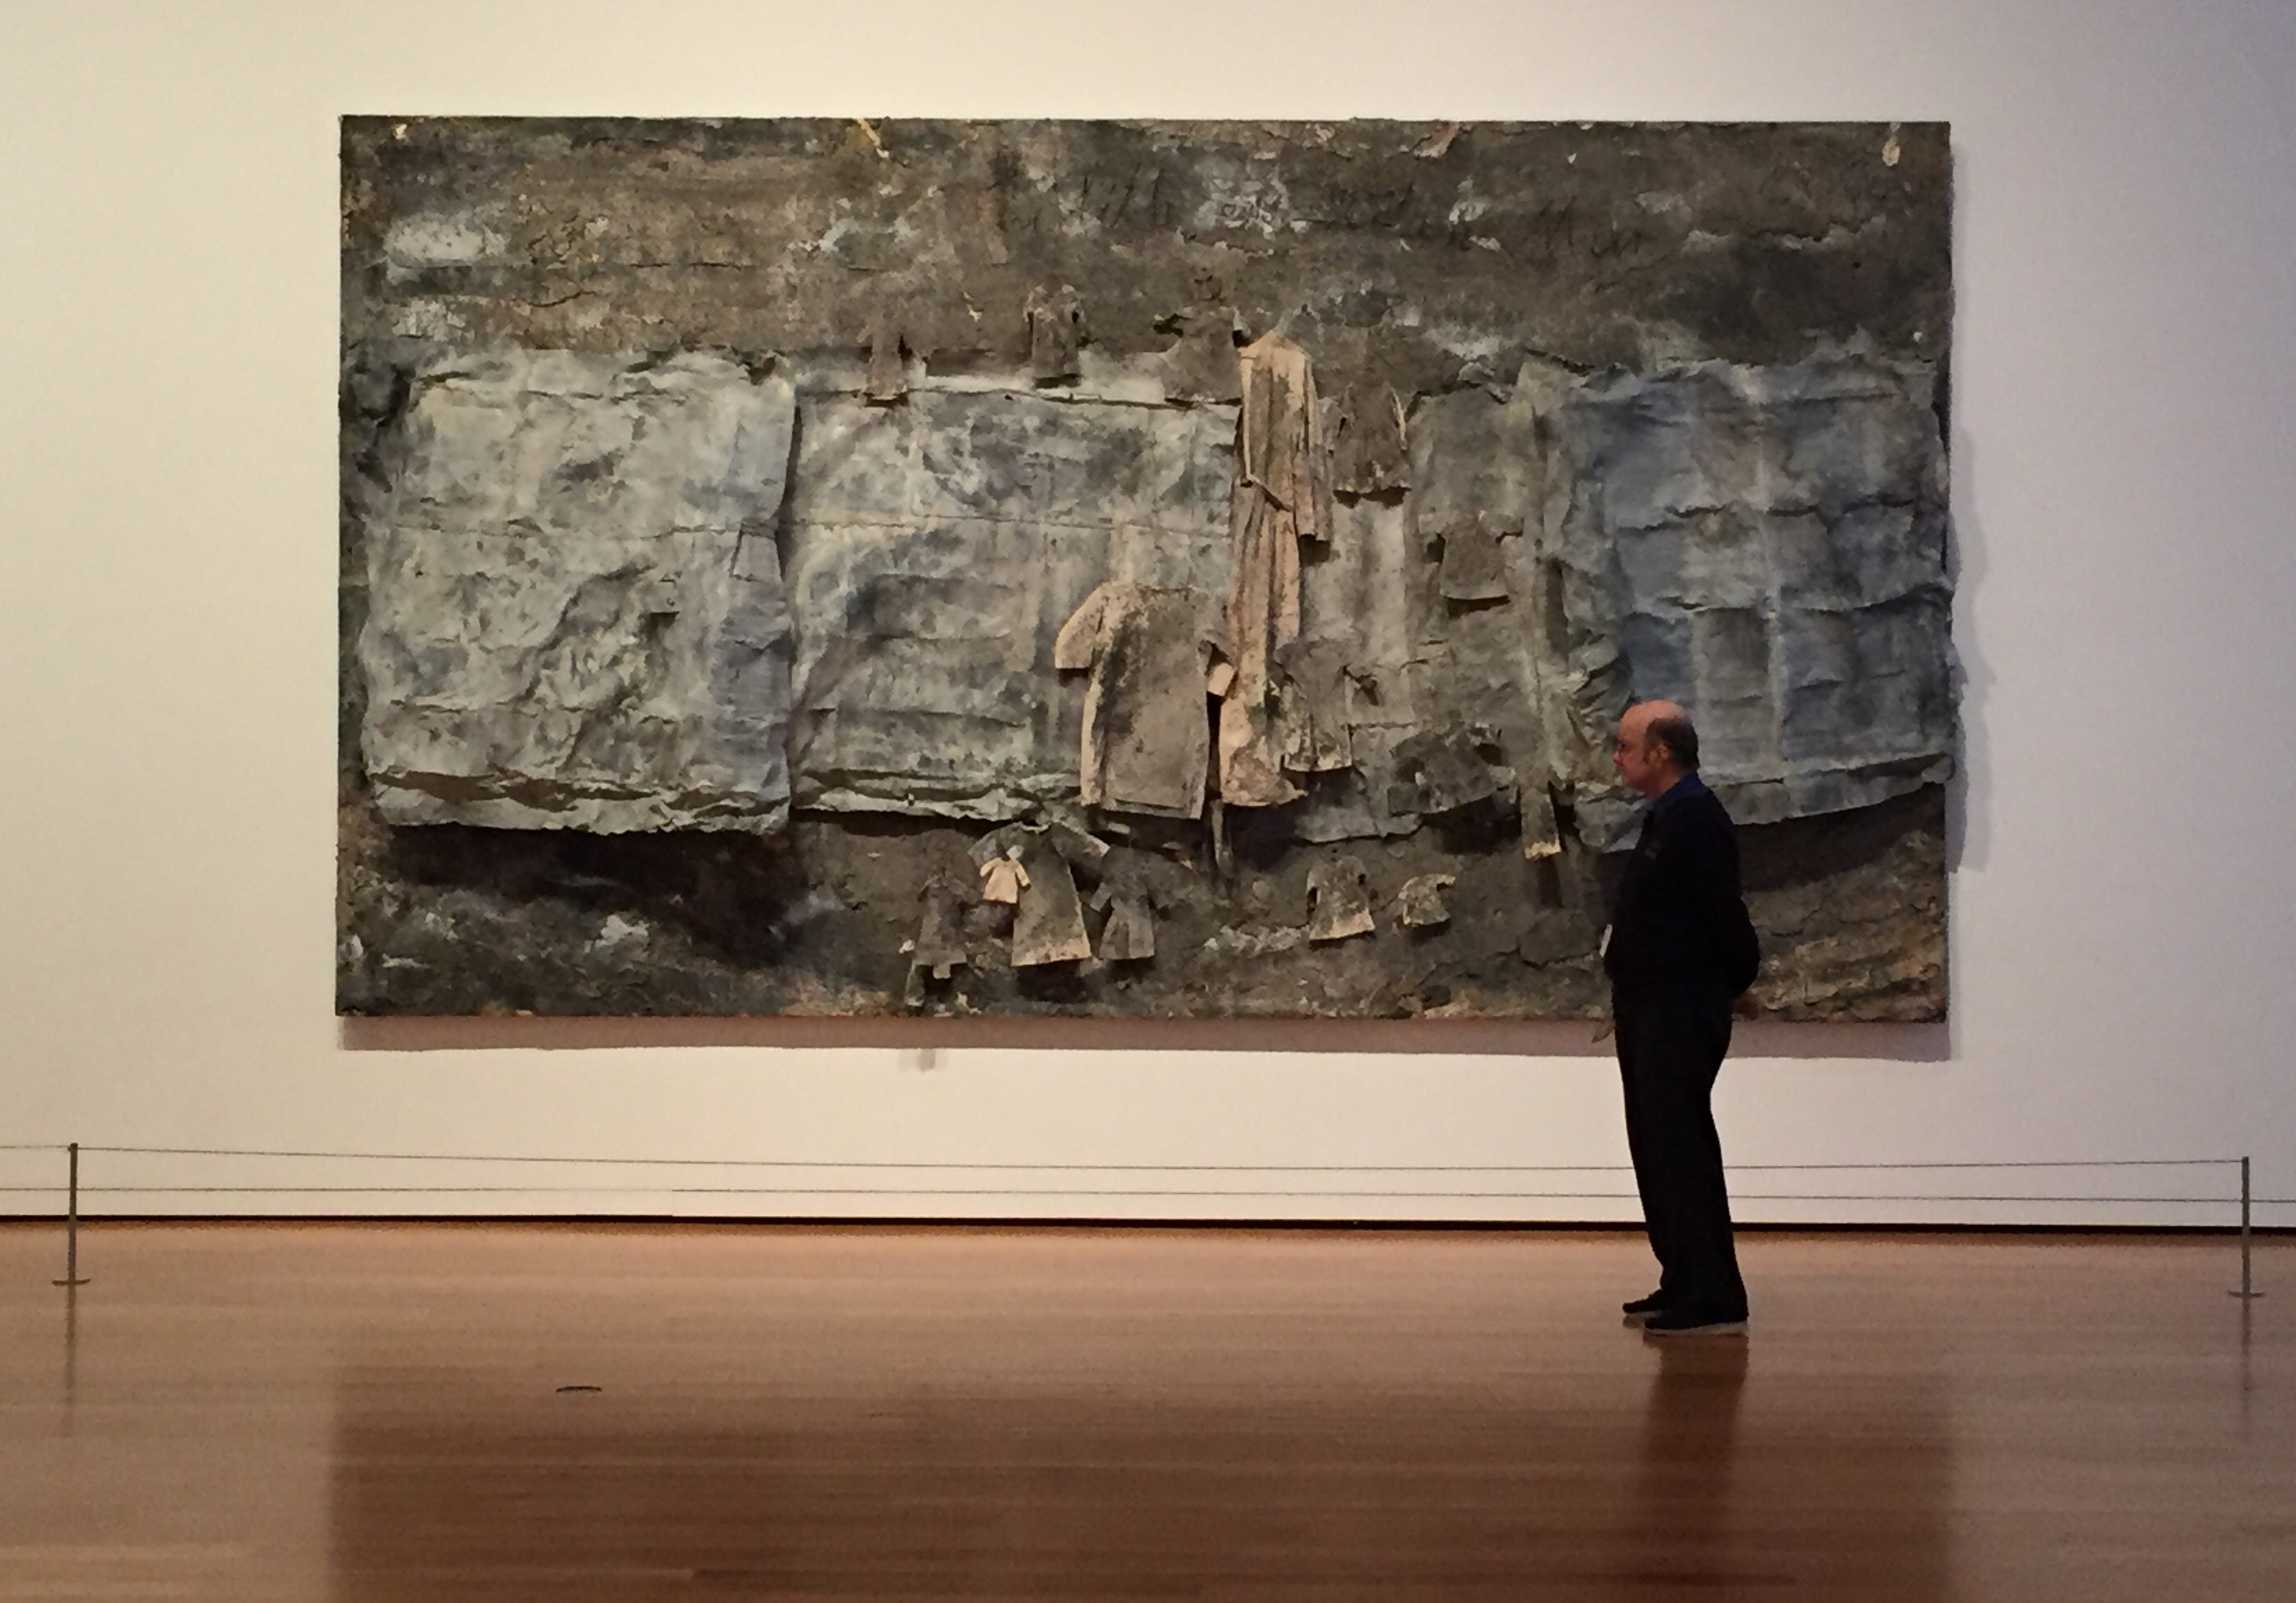 """Breaking the rules: Anselm Kiefer, """"The Wave"""" or """"Lilith at the Red Sea,"""" 1990, lead, clothes, steel wire, and ash on canvas, Seattle Art Museum"""